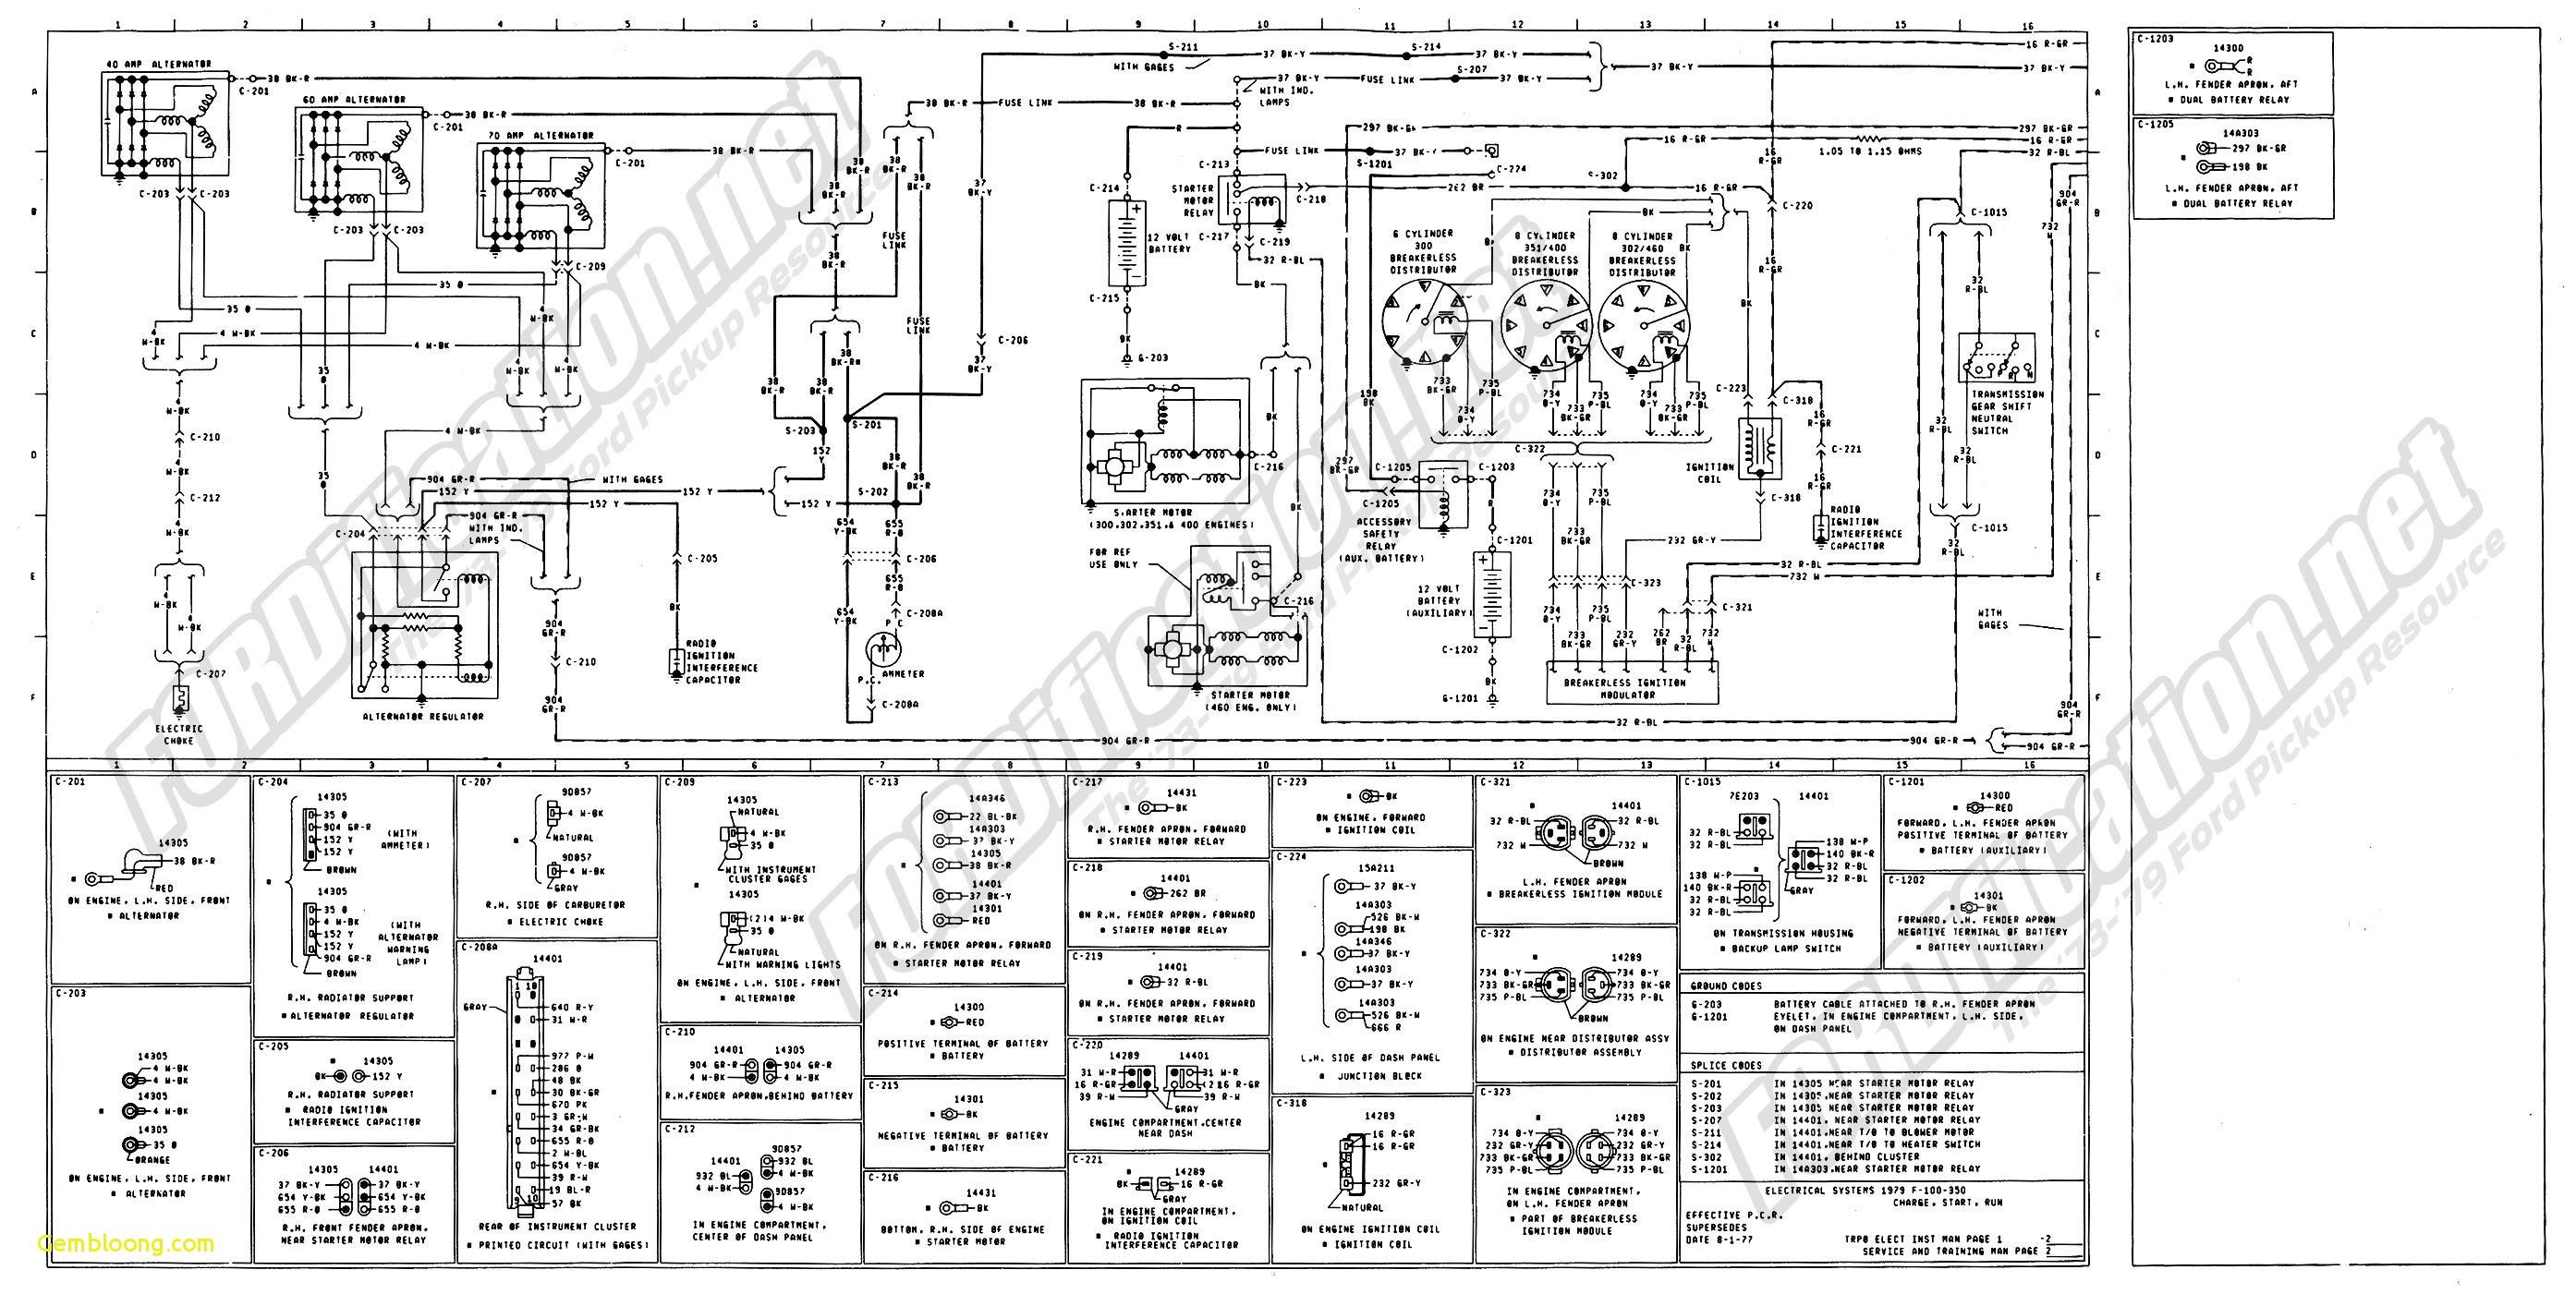 Wiring Diagram For 97 Jeep Grand Cherokee